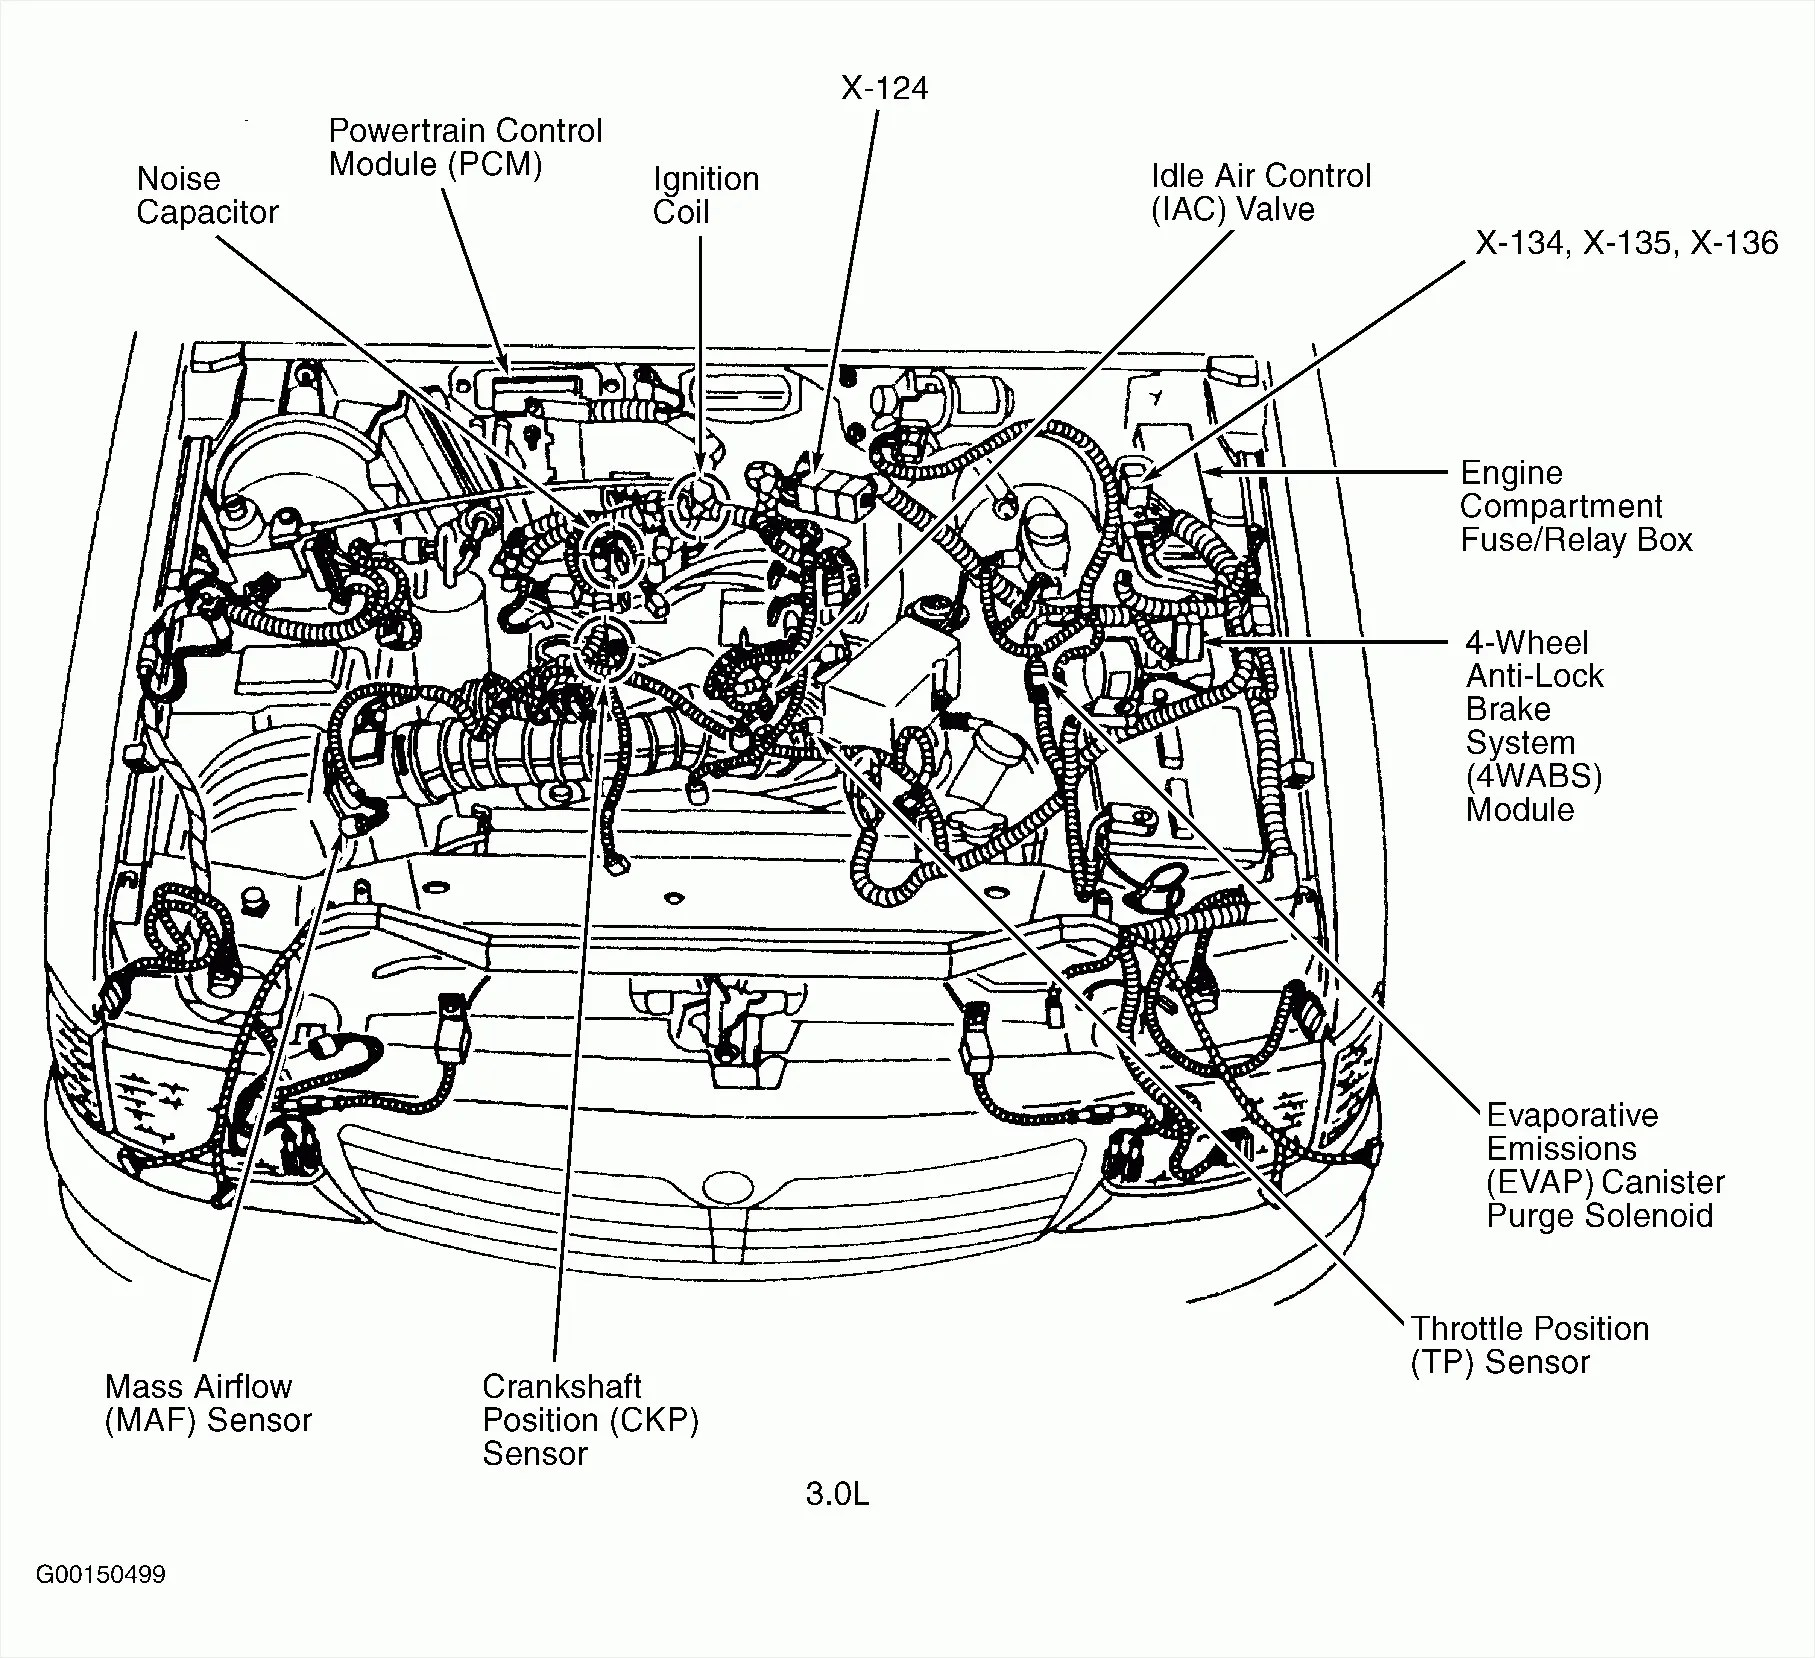 hight resolution of marks diagrams likewise 2004 chevy malibu engine diagram on isuzu 3 diagram moreover pontiac 3400 engine diagram on 2000 isuzu trooper